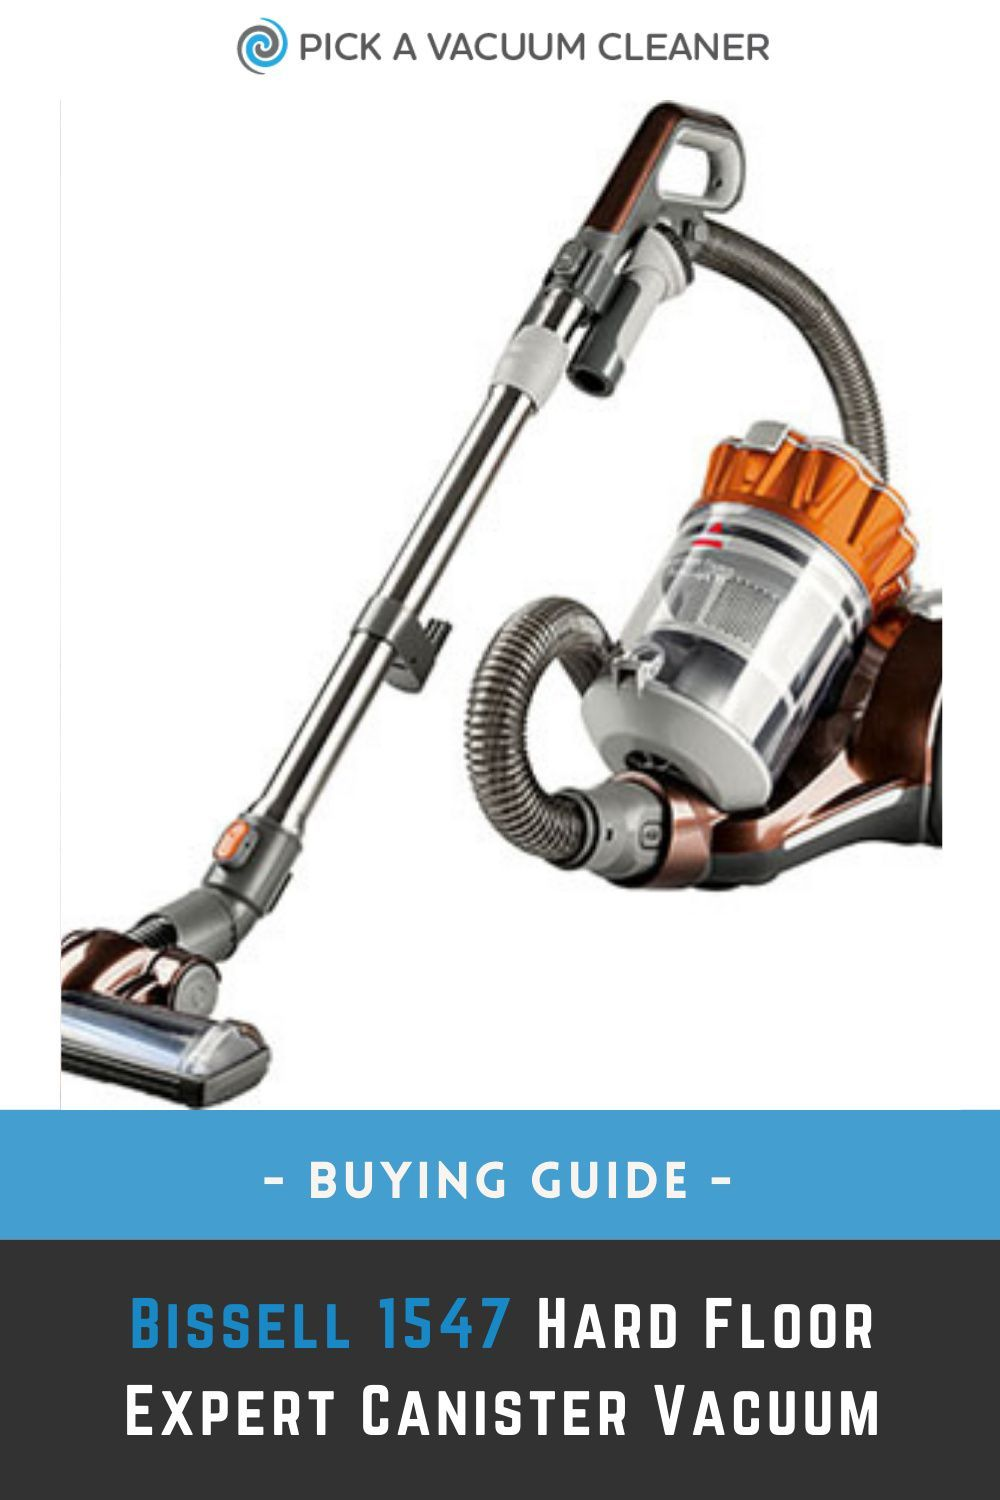 Bissell 1547 Hard Floor Expert Canister Vacuum in 2020